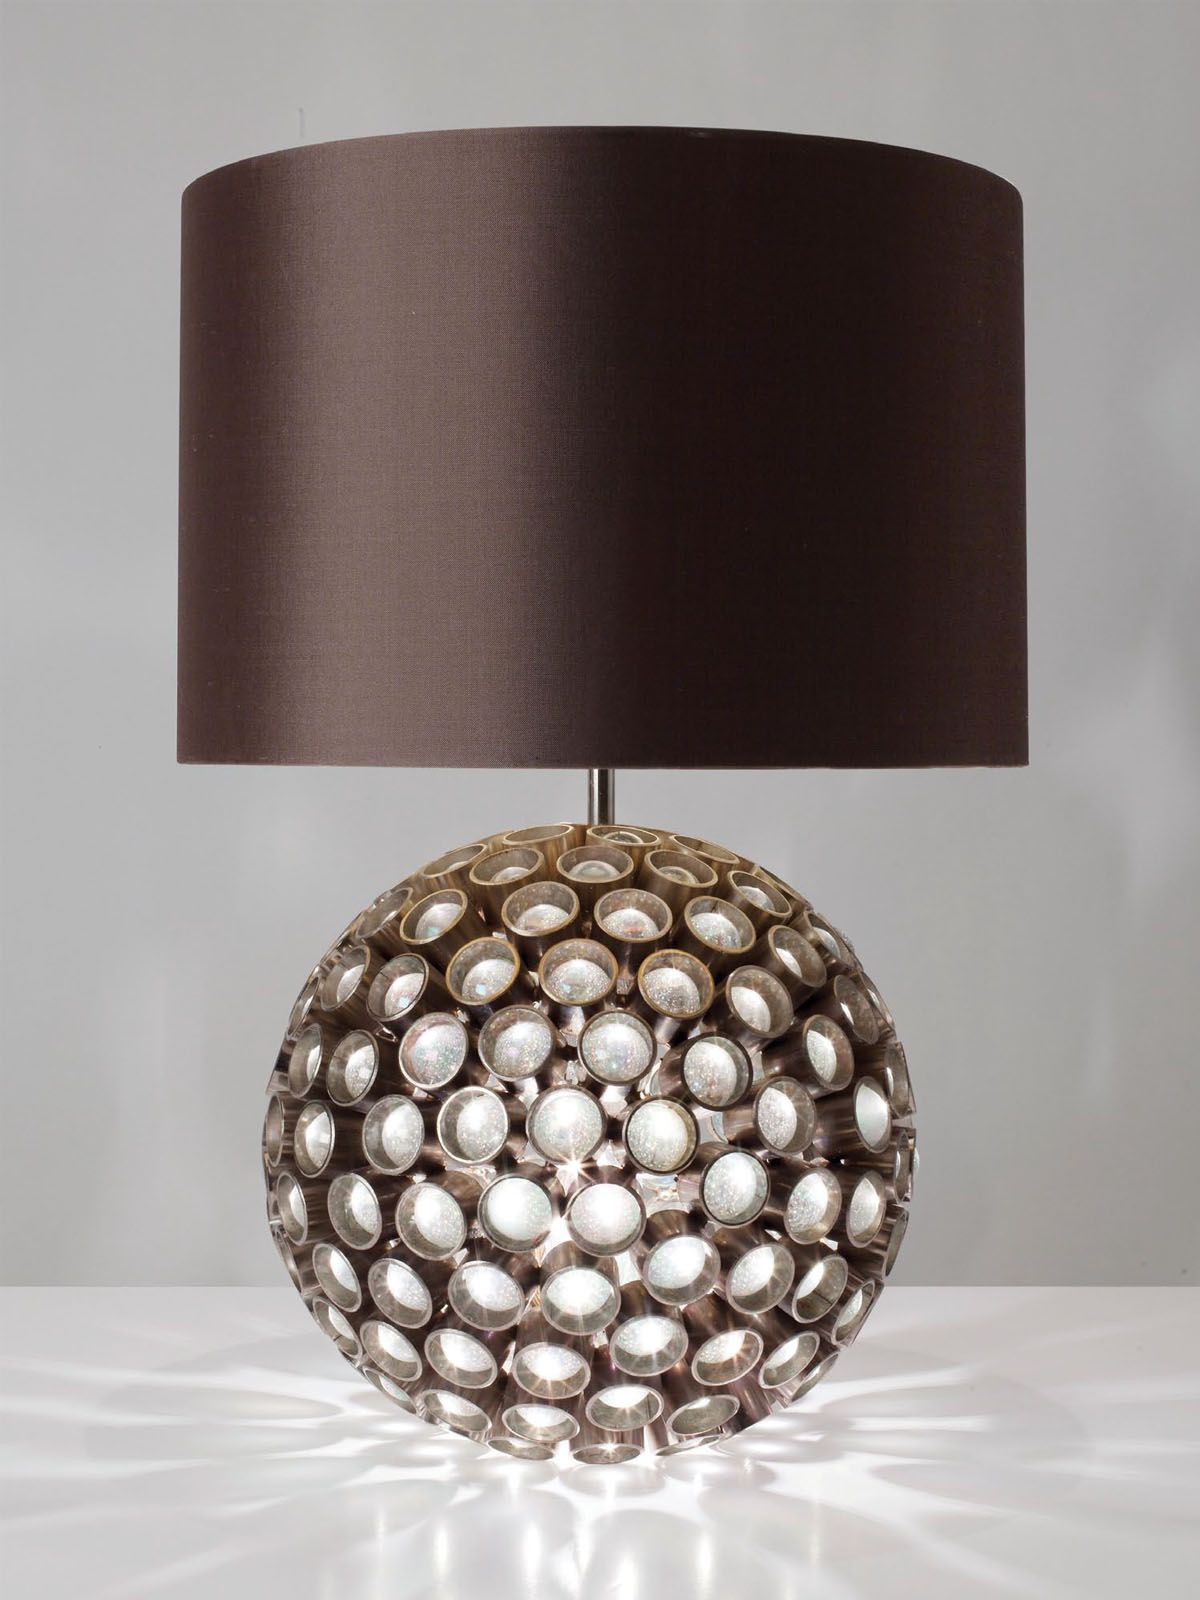 Best And Lloyd Anemone Table Lamp De Sousa Hughes